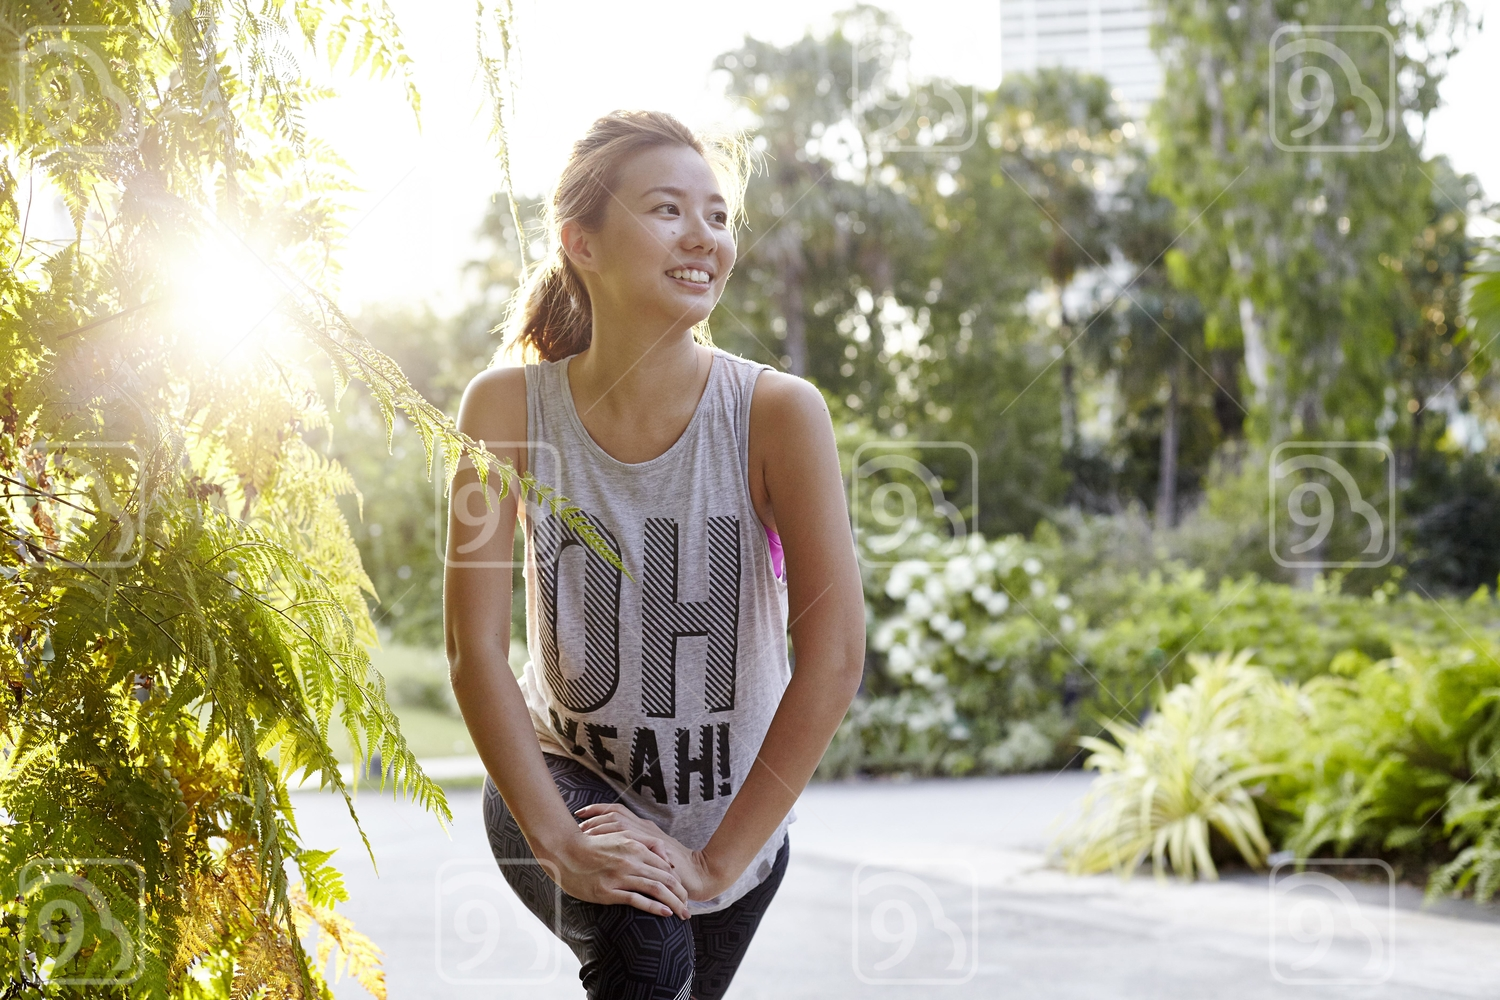 Beautiful Smiling Woman after a run.